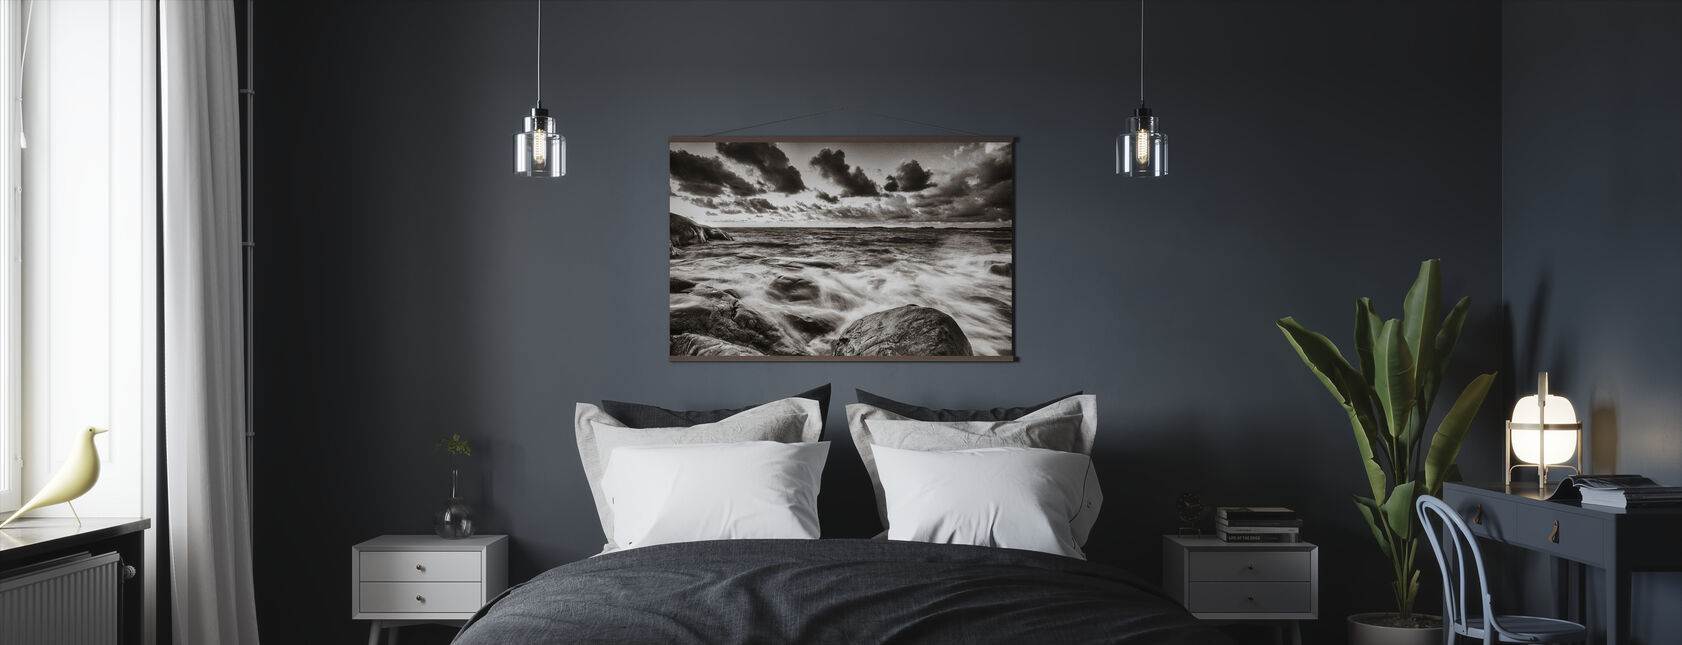 Stormy Sea at Rocks - Poster - Bedroom